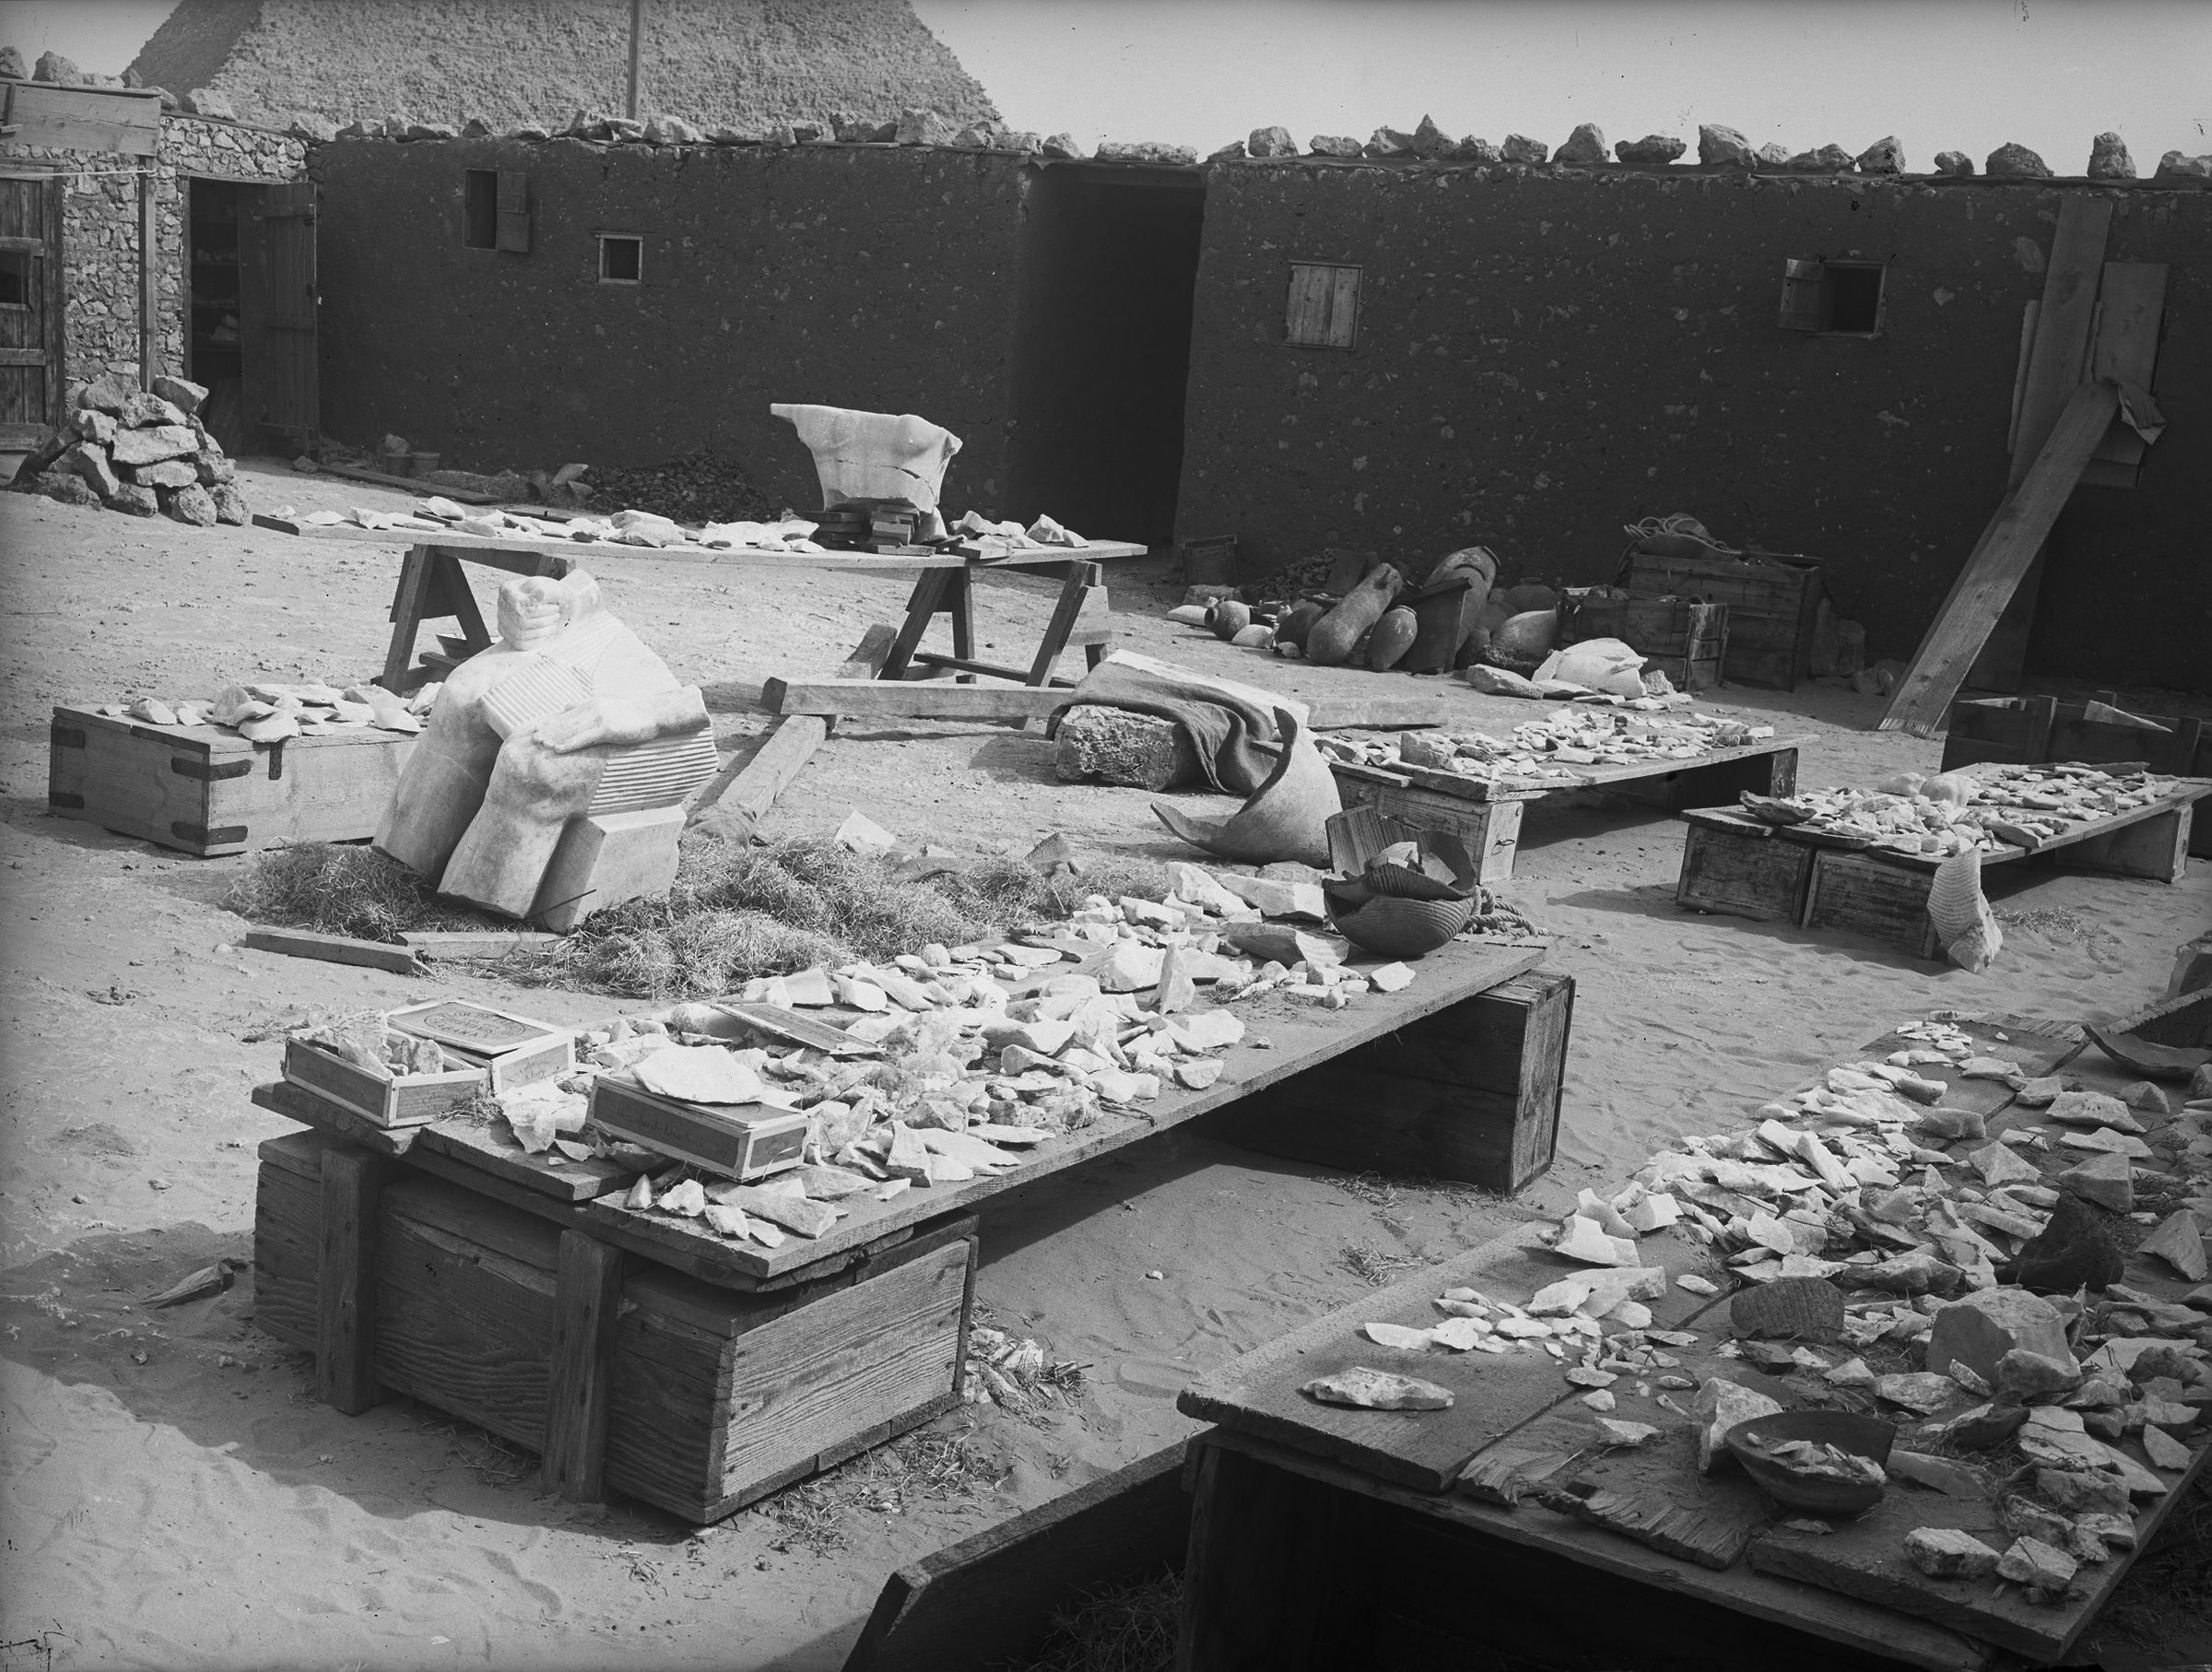 People & places: Site: Giza; View: Giza, Harvard Camp